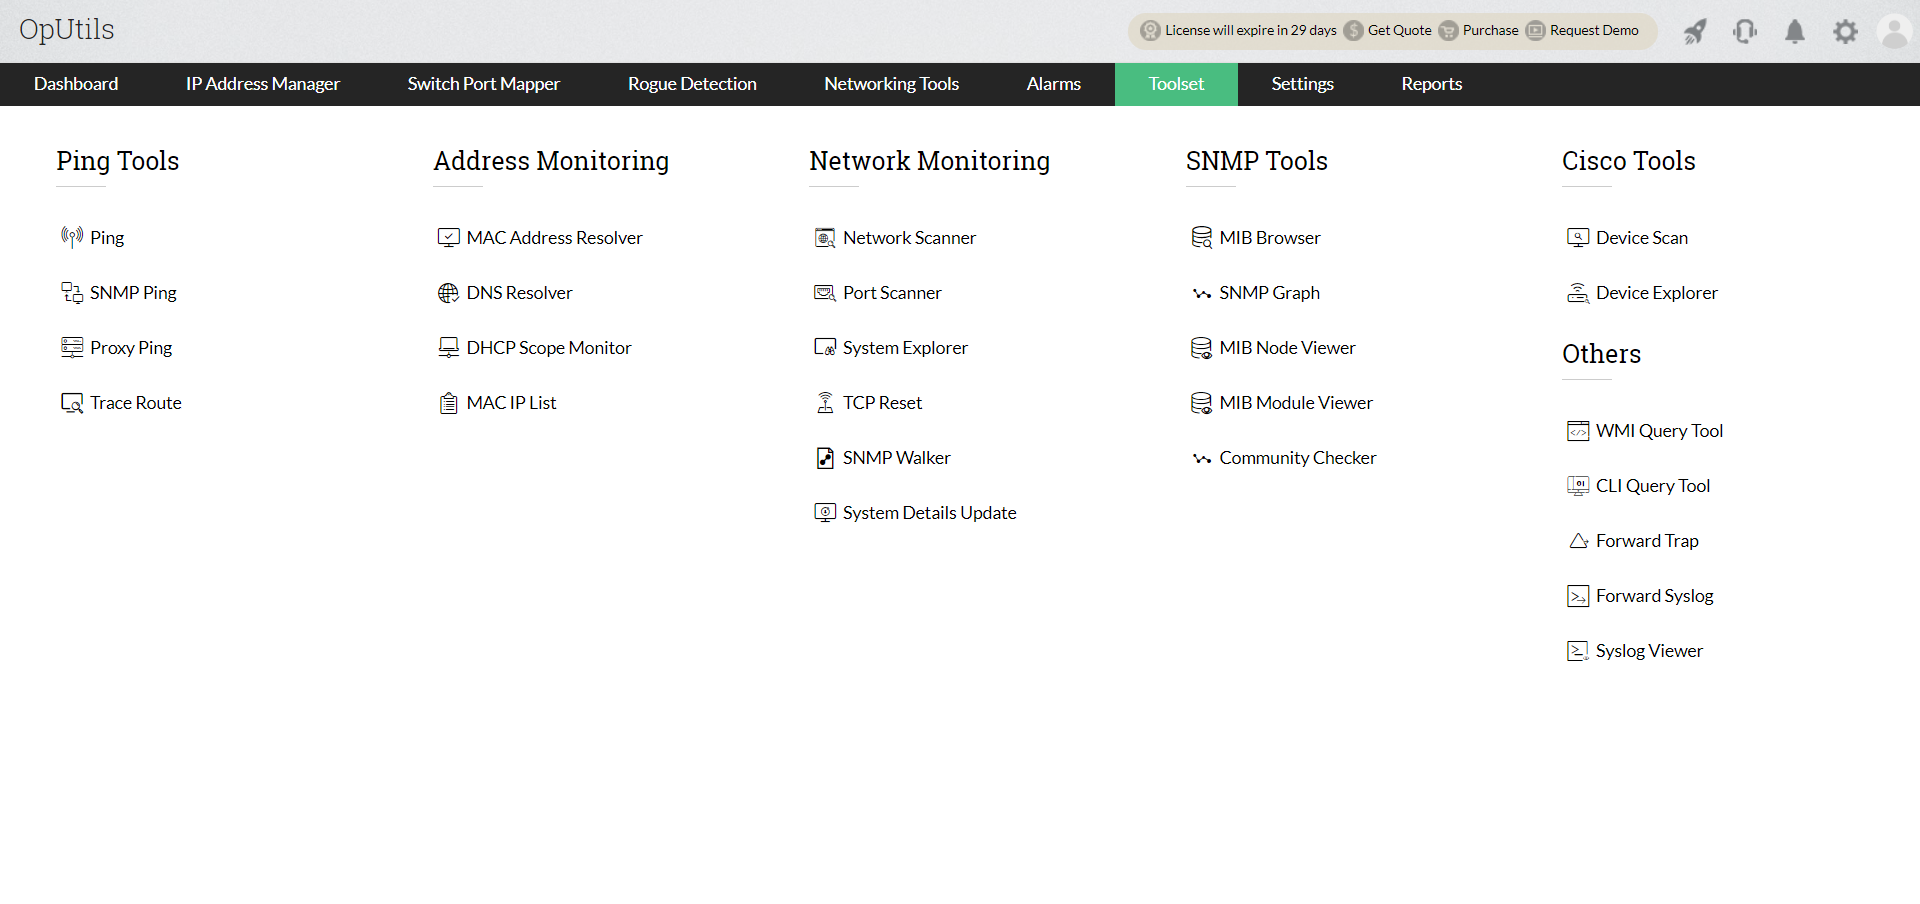 Switch Port Mapper Tool | Switch Port Mapping Software – OpUtils